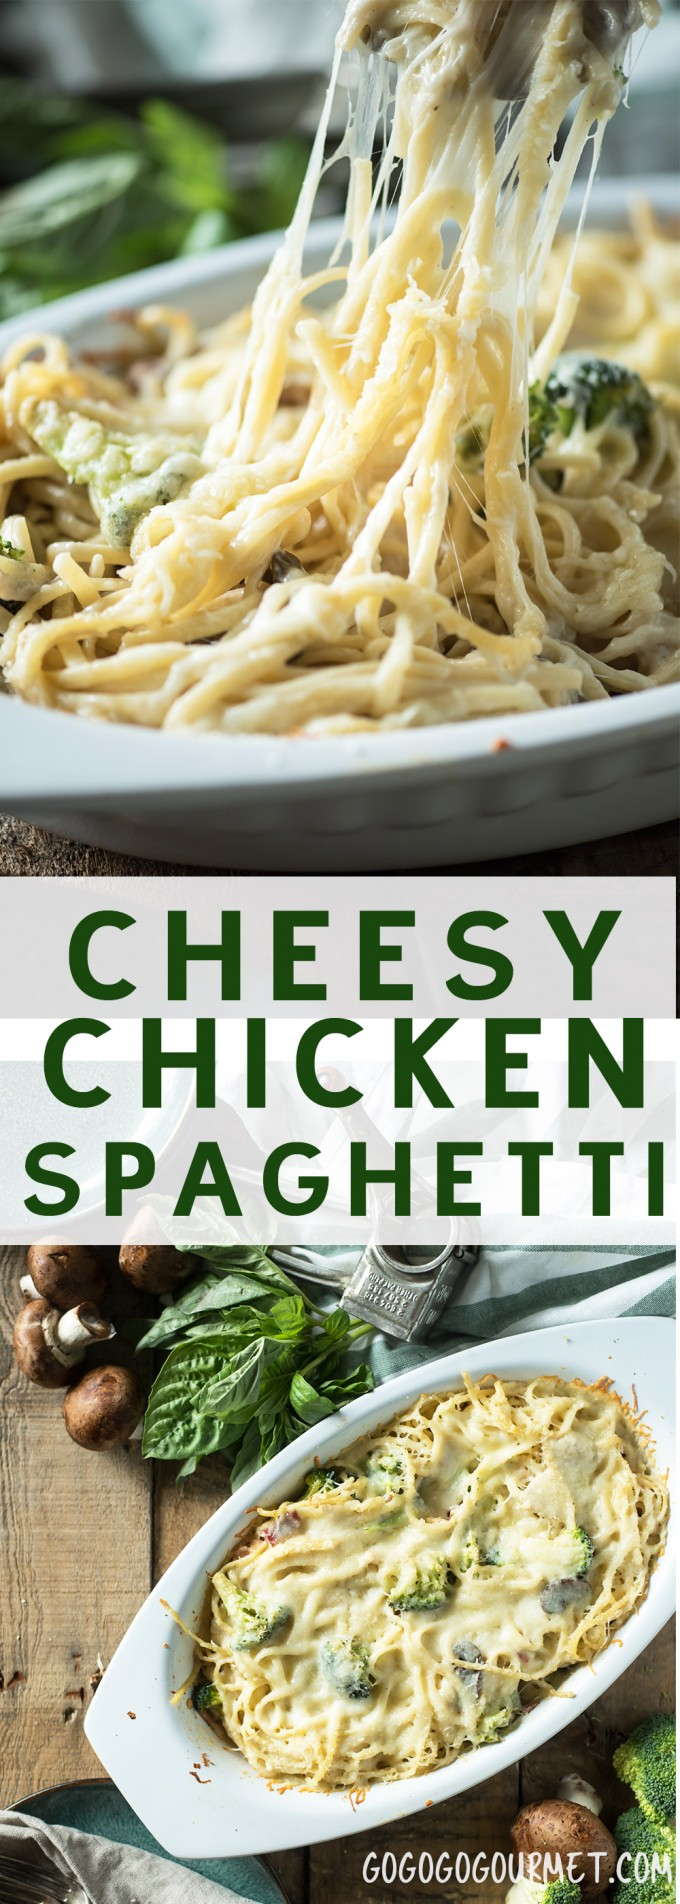 Cheesy Chicken Spaghetti- a fast and easy weeknight meal using rotisserie chicken! |